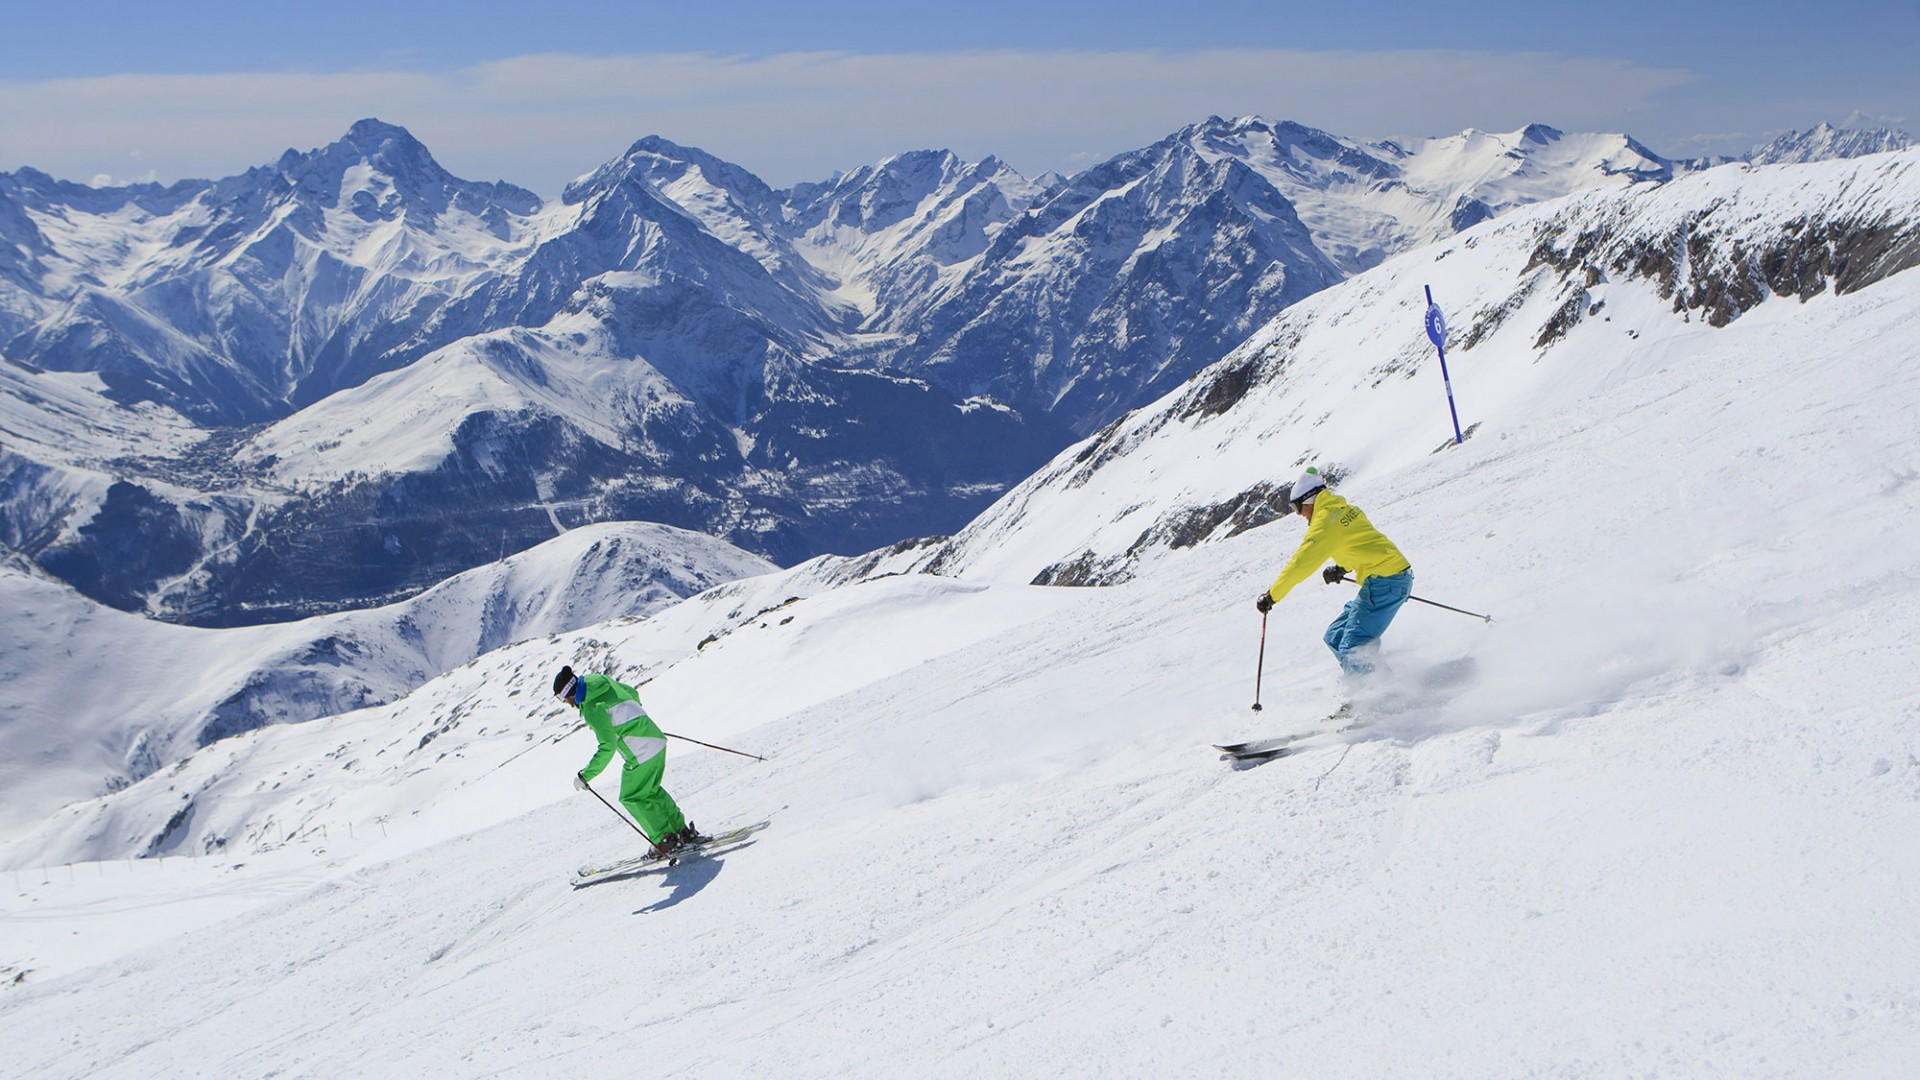 Skiing in Alpe D'Huez, France